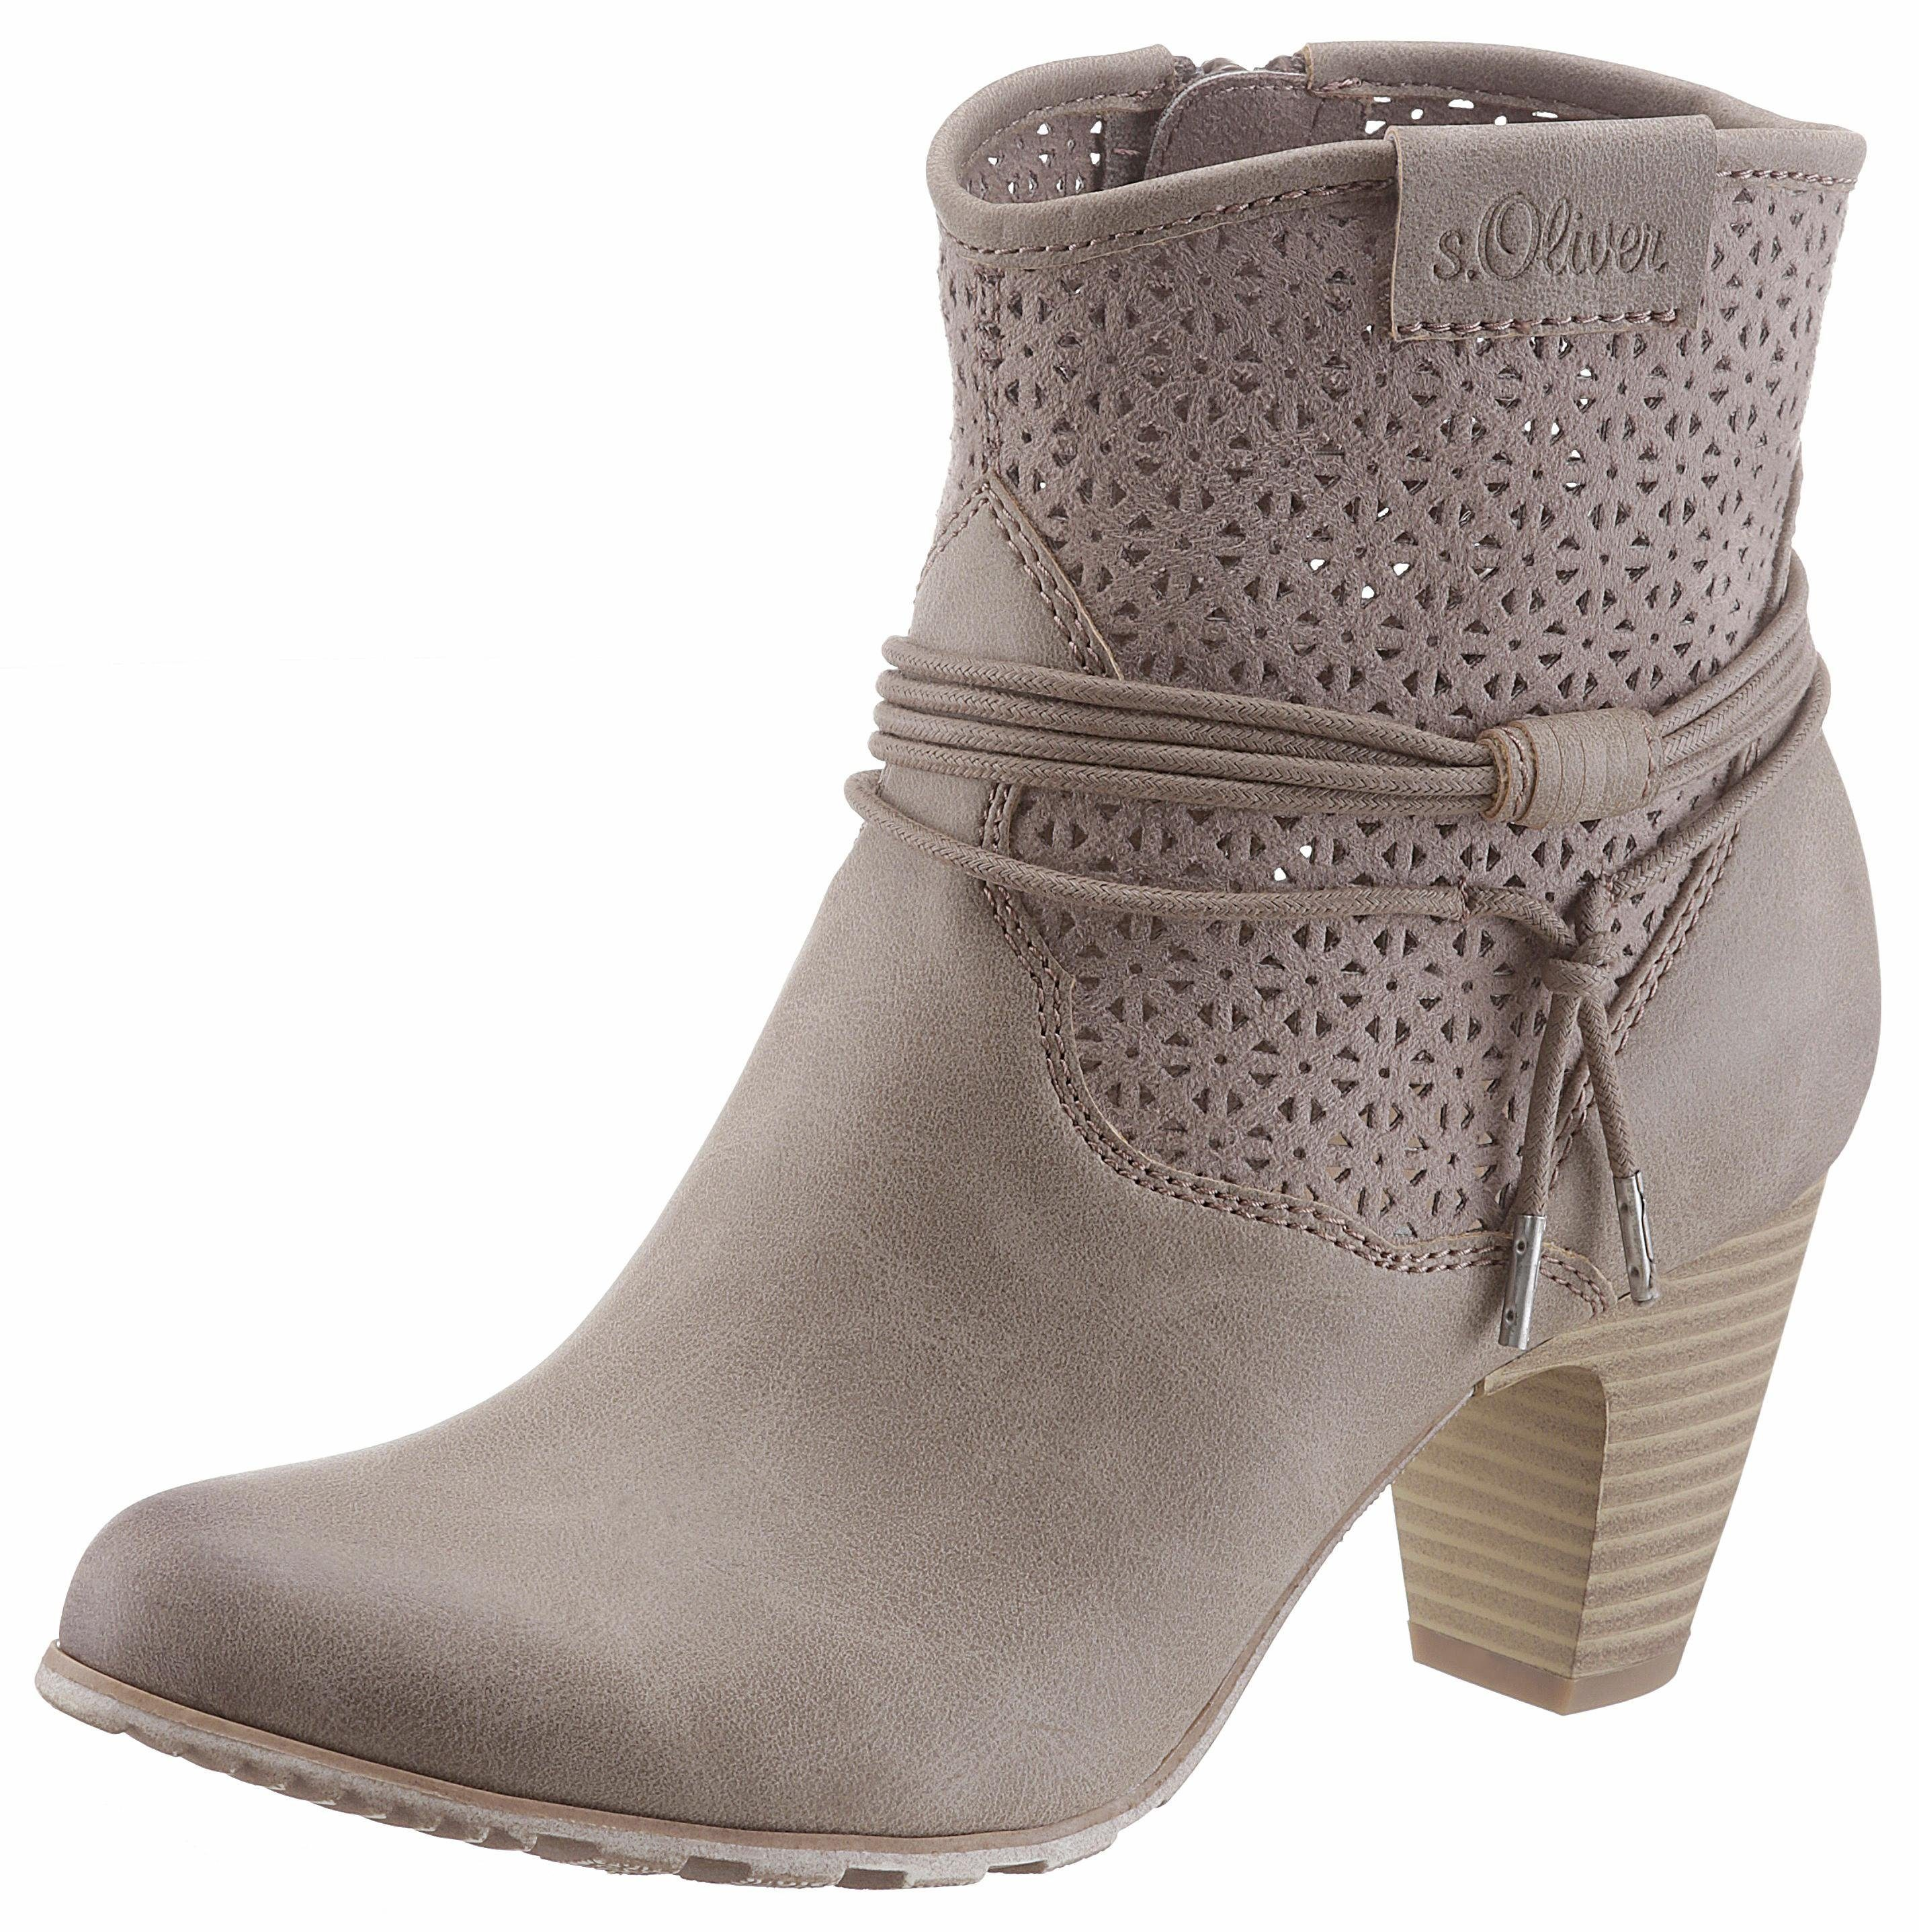 sOliver RED LABEL Stiefelette, mit Lasercut  taupe